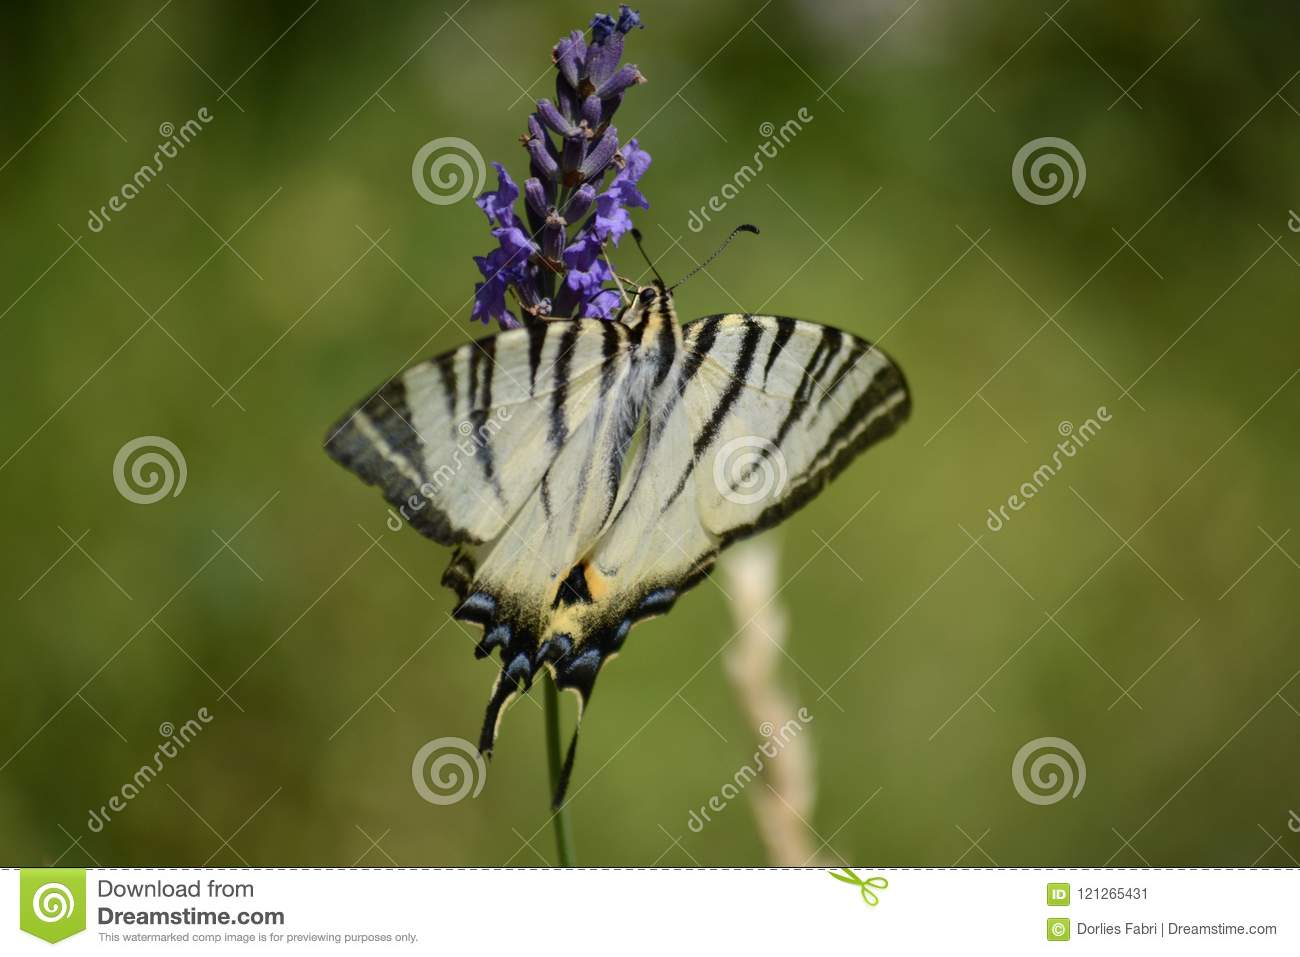 Blac-white butterfly Butterfly on lavender